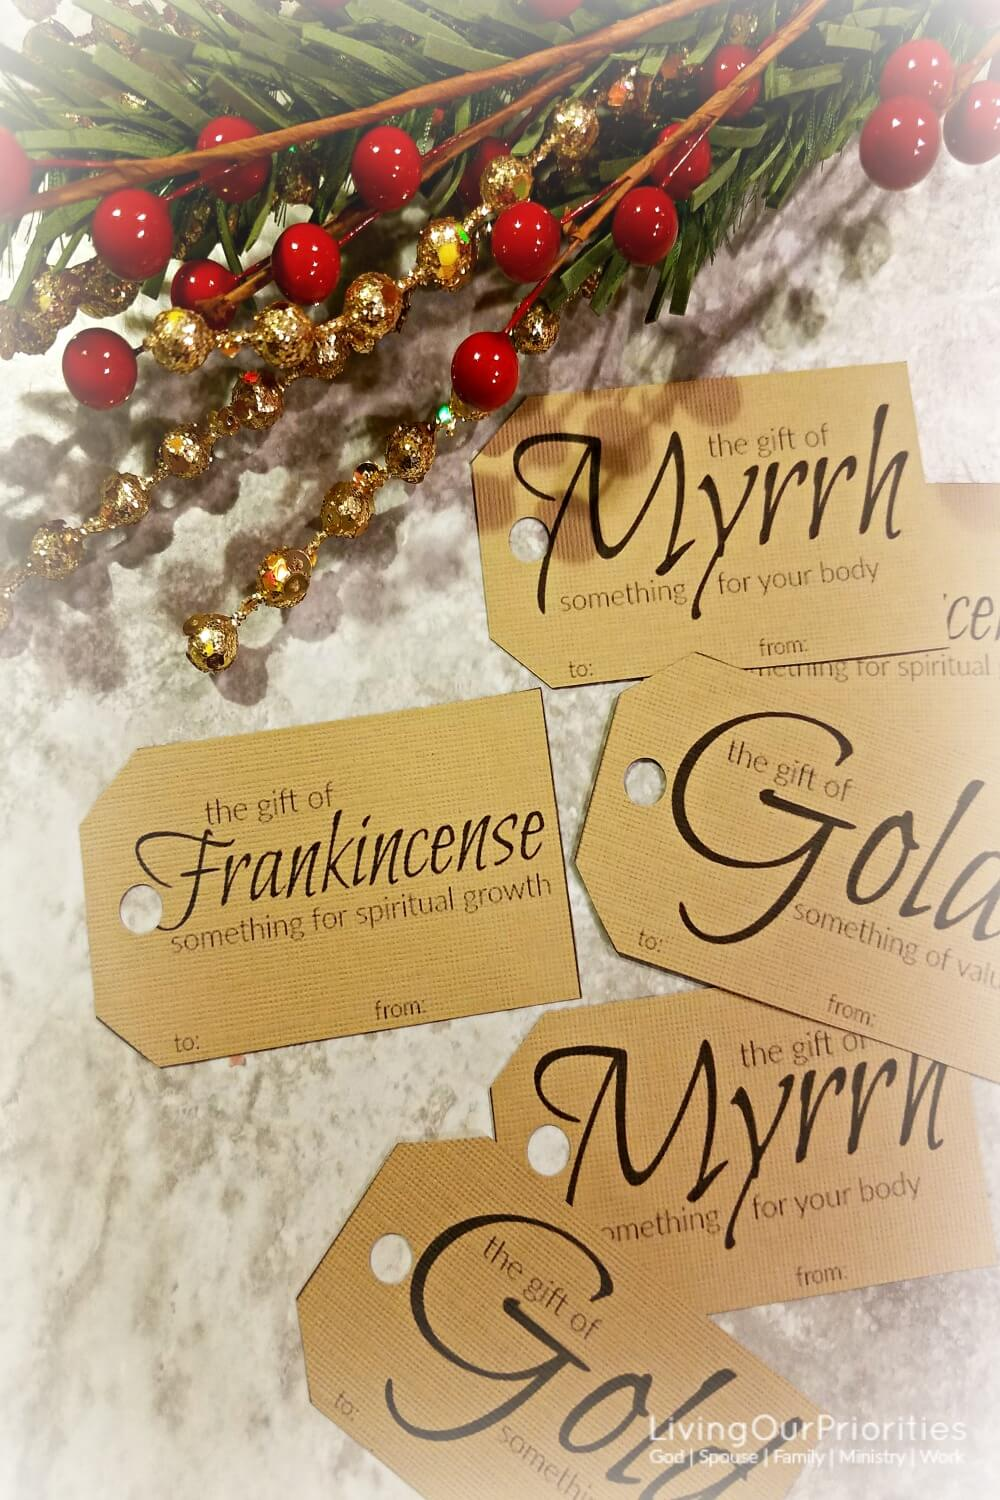 Gold Frankincense And Myrrh Christmas Gifts.How To Give The Gift Of Gold Frankincense And Myrrh